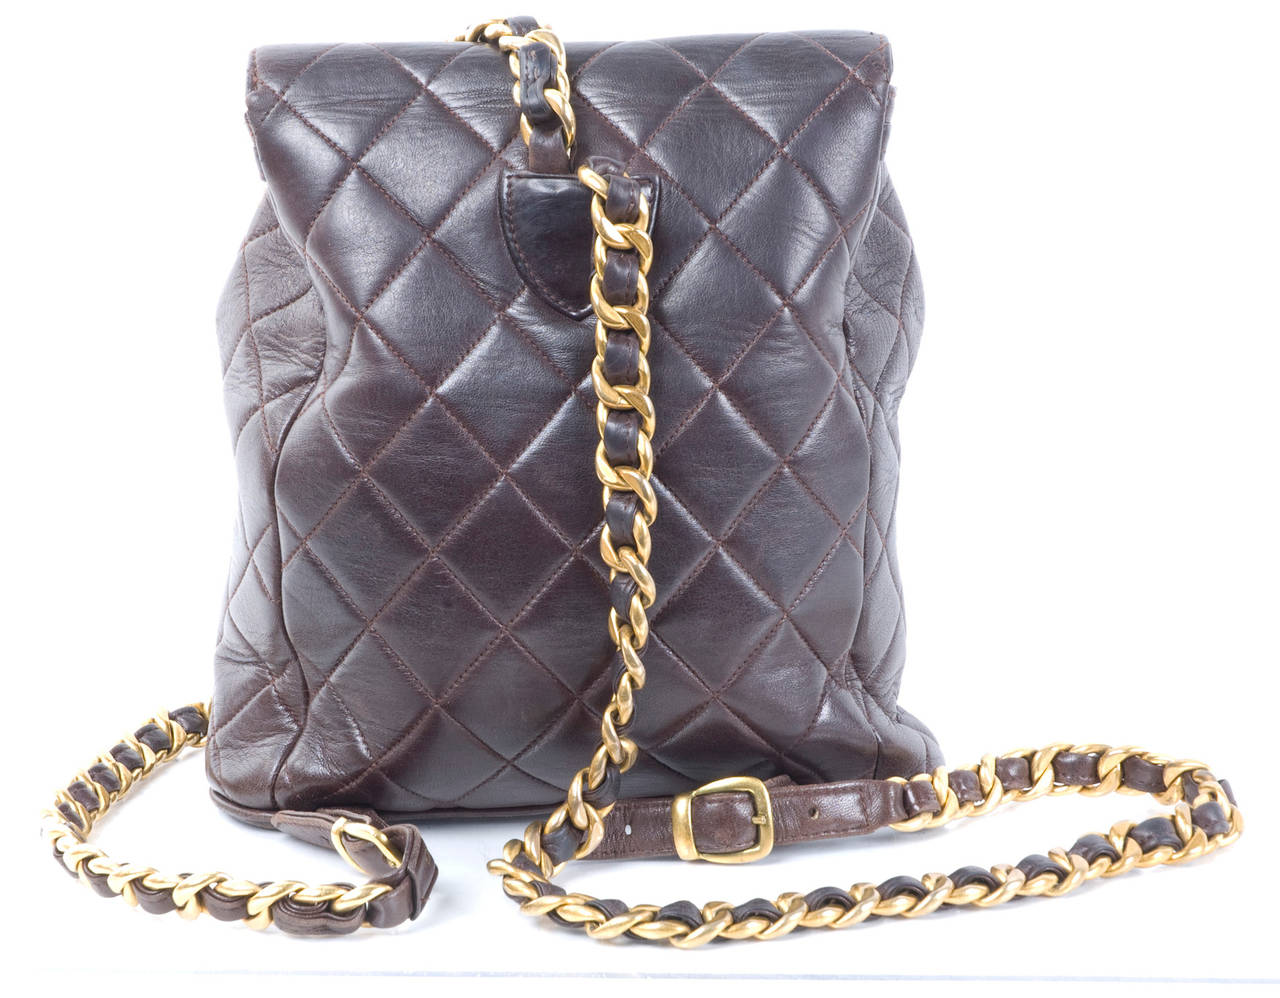 Chanel Brown Calf-Leather Backpack 4